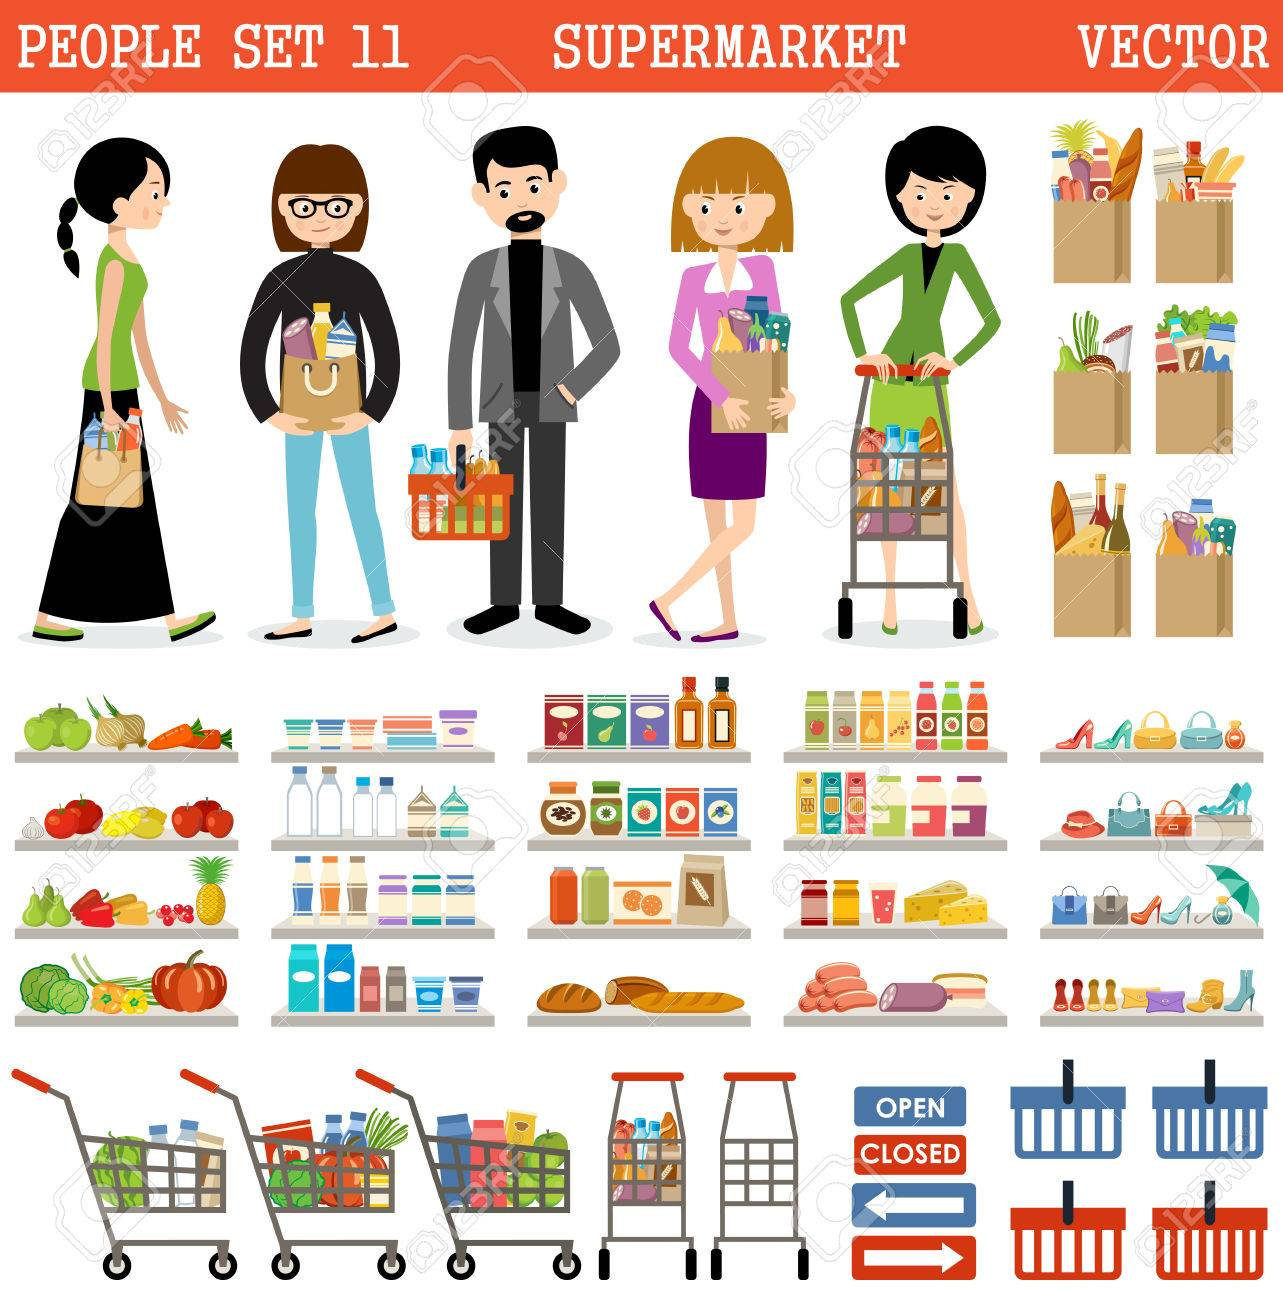 People in a supermarket with purchases and products Foto de archivo - 58037437